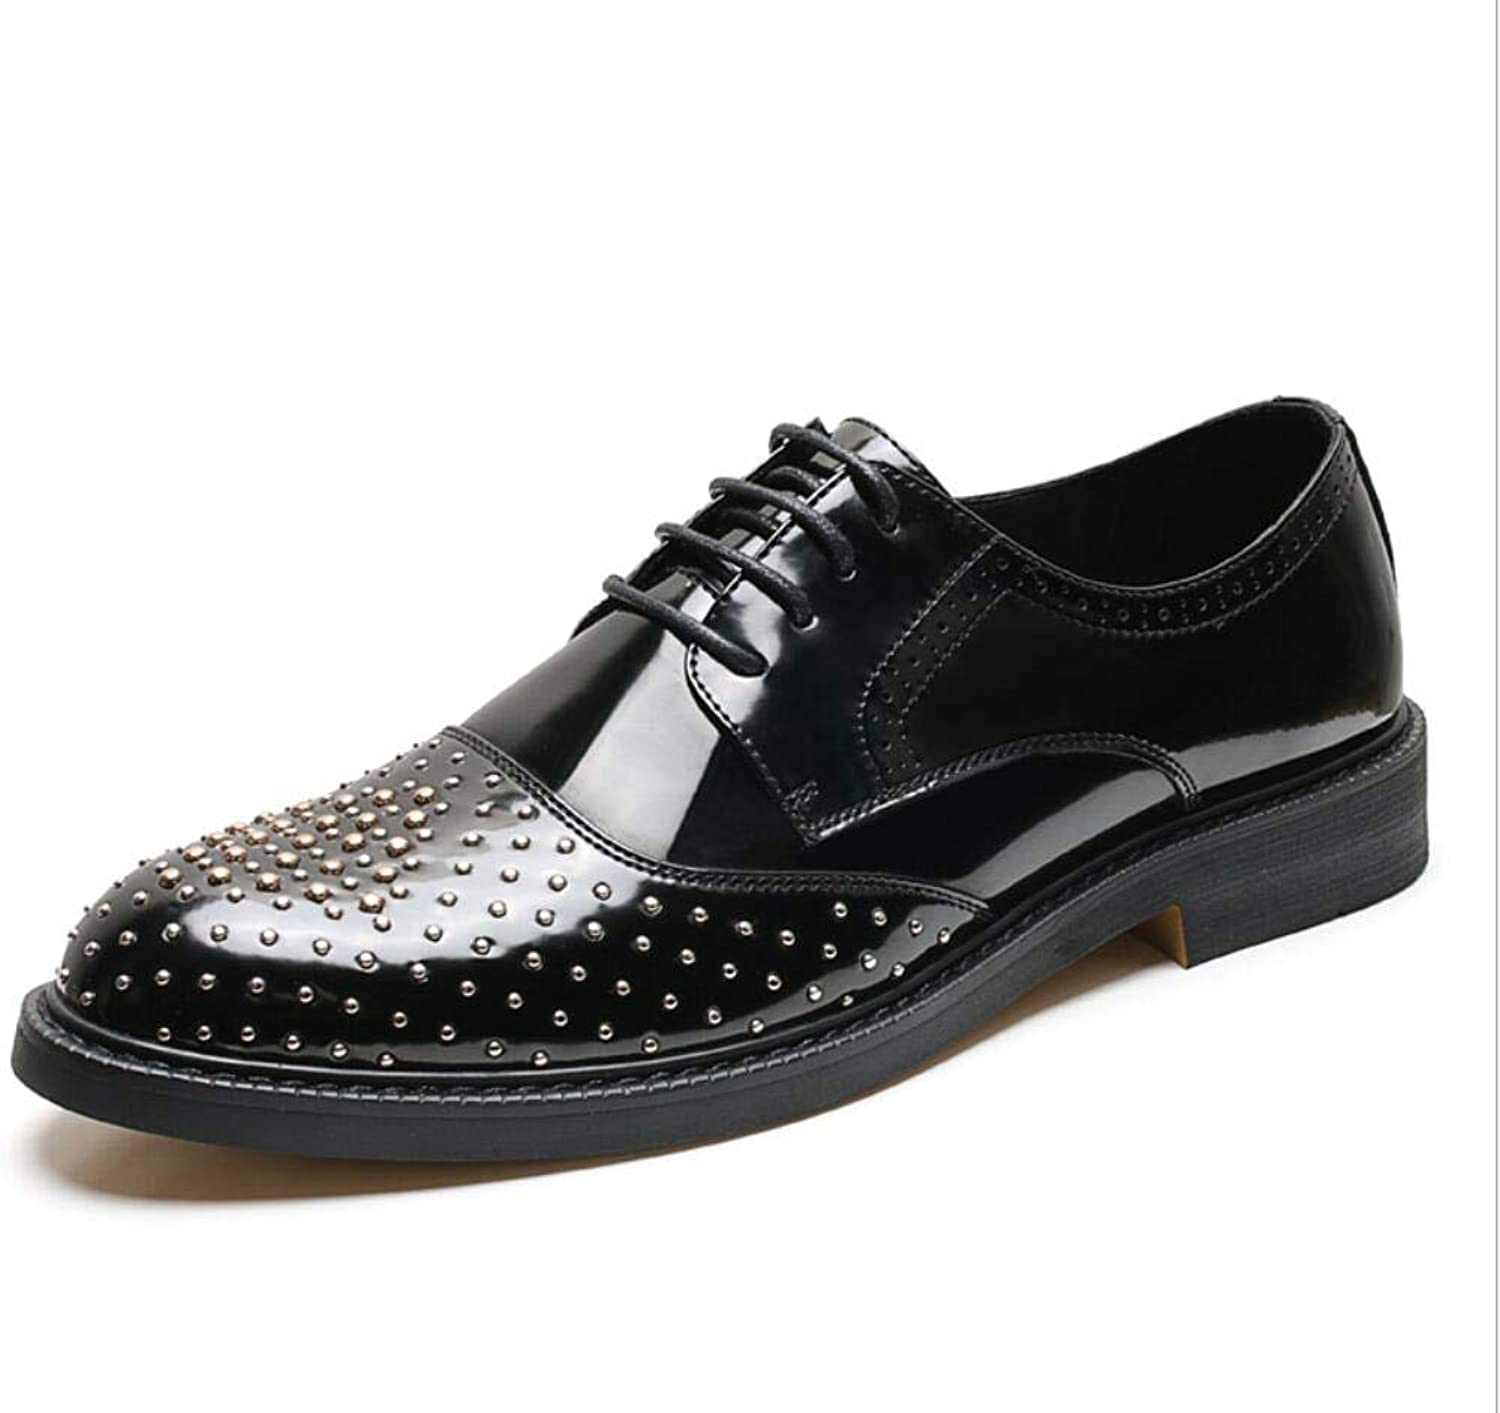 Men's Rivet shoes Leather Loafers & Slip-Ons Driving shoes Platform shoes Comfortable Sparkling Glitter Studded shoes Night Club Stage Personality for Wedding Party & Evening